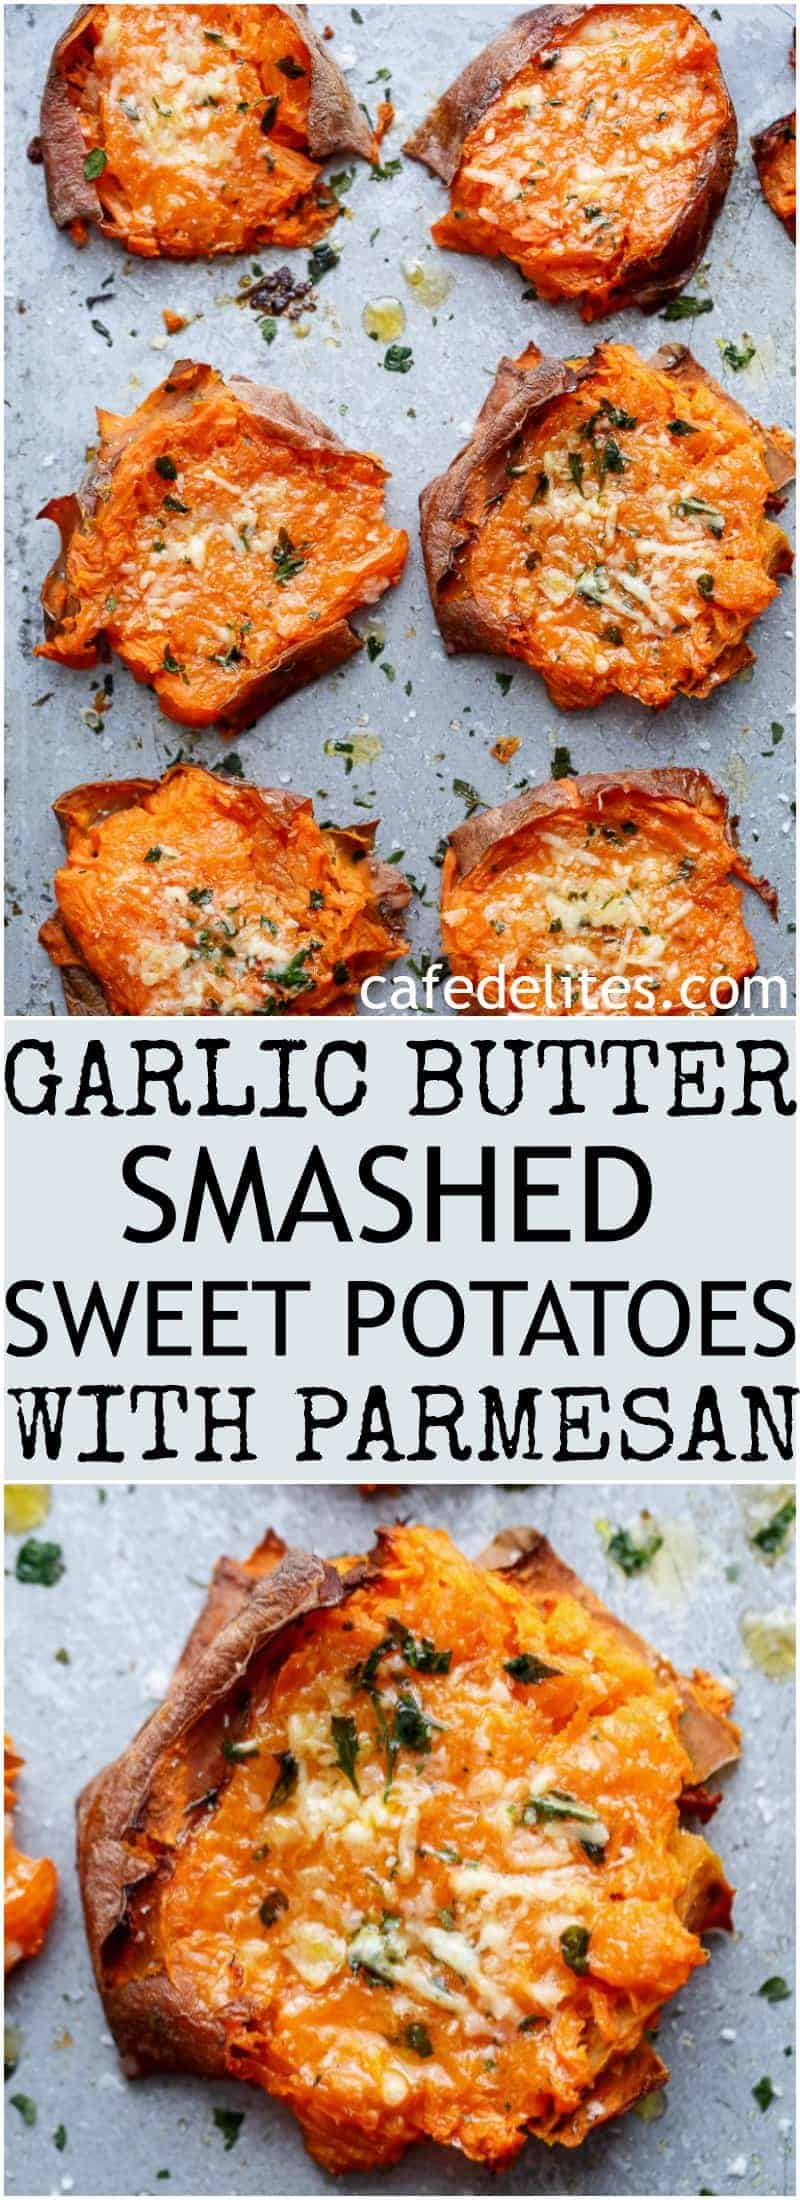 Garlic Butter Smashed Sweet Potatoes With Parmesan Cheese are crispy ...